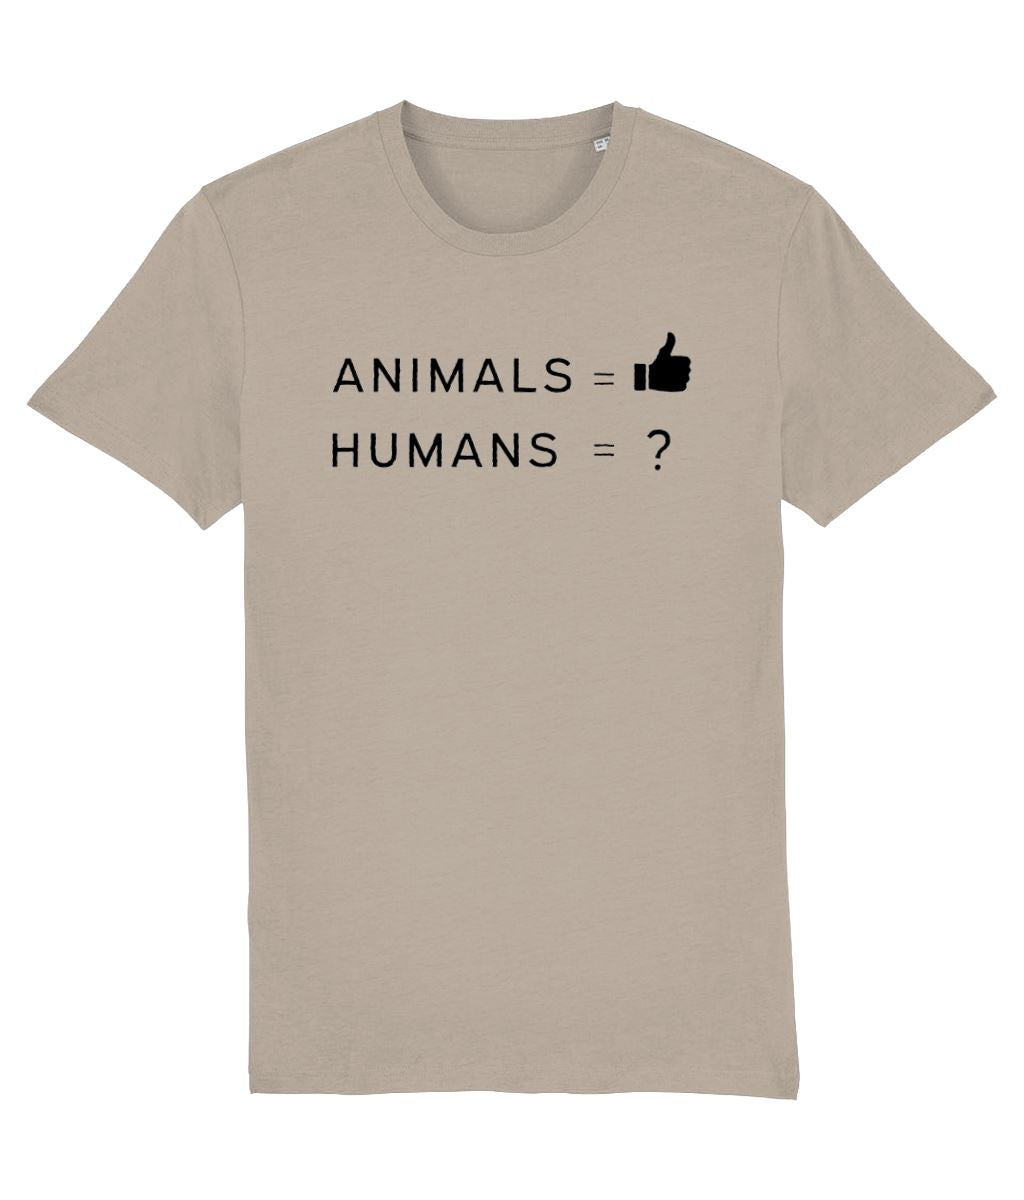 """Animals Thumbs Up"" Vegan T-Shirt - 100% Organic Cotton (Unisex) Clothing Vegan Original Desert Dust X-Small"